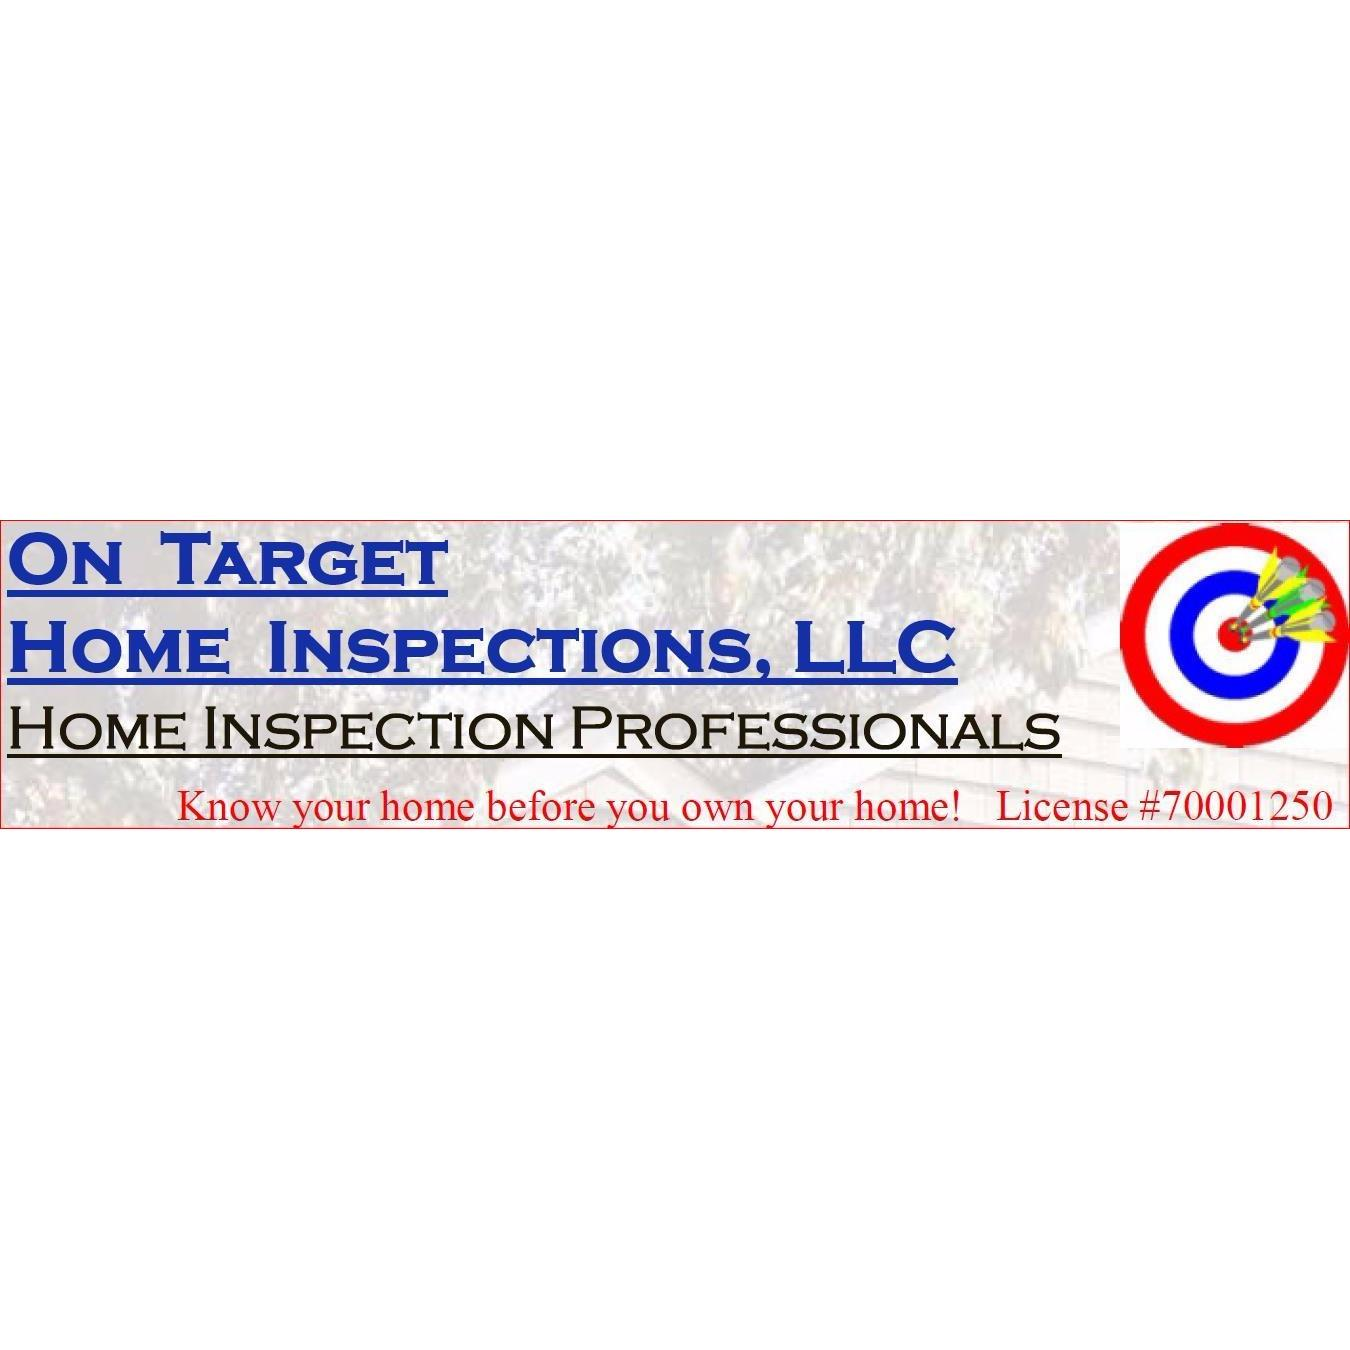 On Target Home Inspections